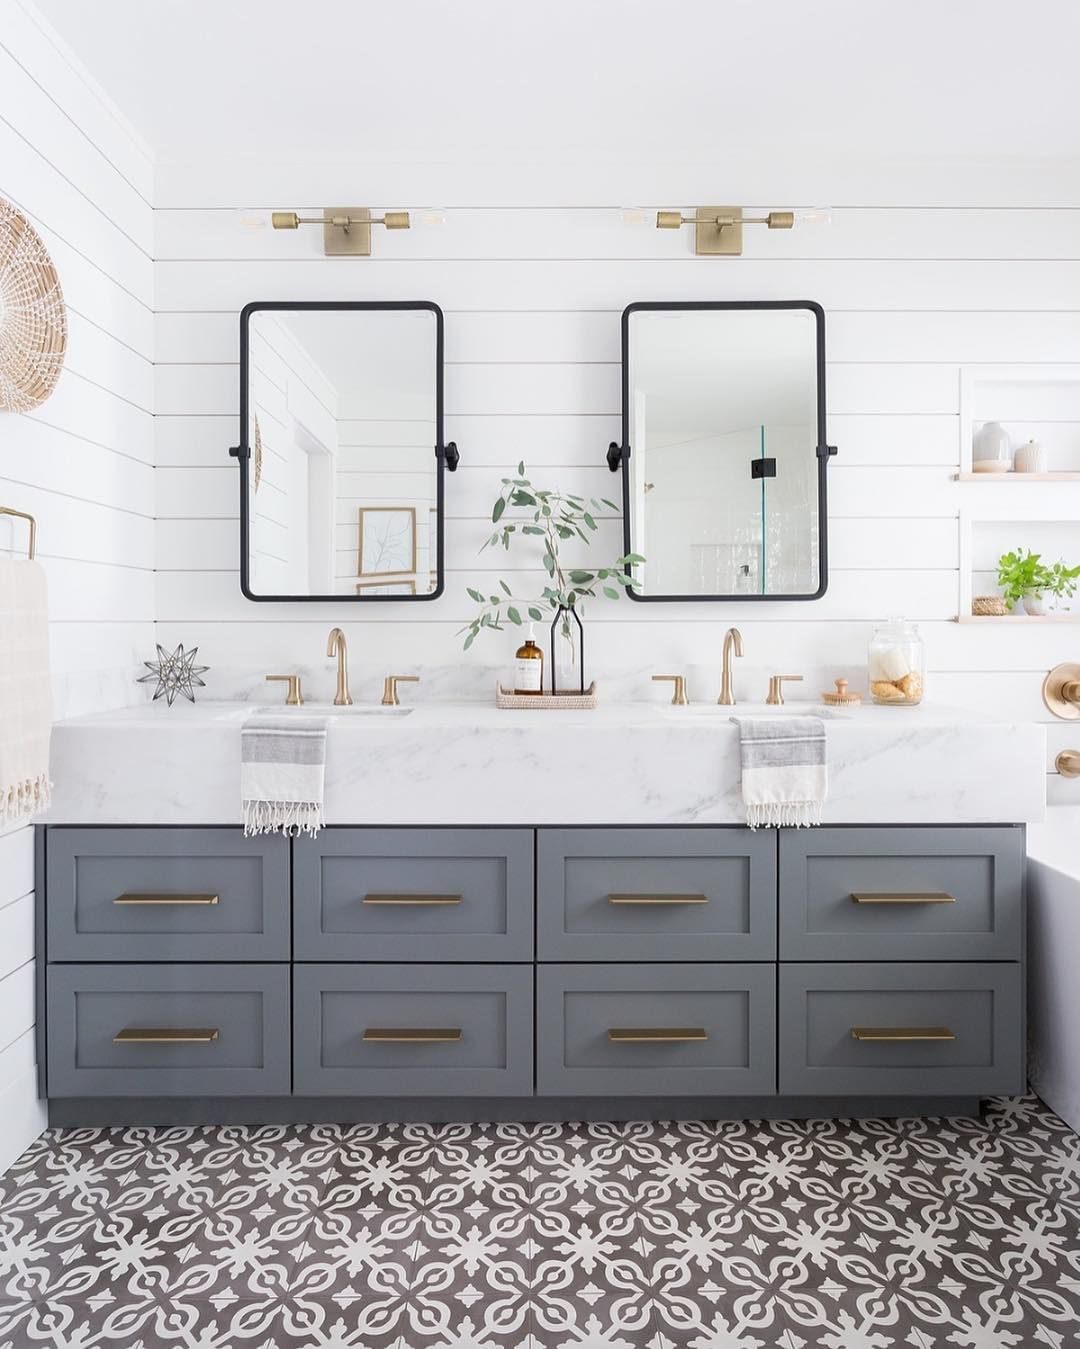 The Coastal Table On Instagram Design Details Abound In This Inviting Jack And Jill Bathroom Th Hampton Style Bathrooms Modern Bathroom Bathroom Inspiration